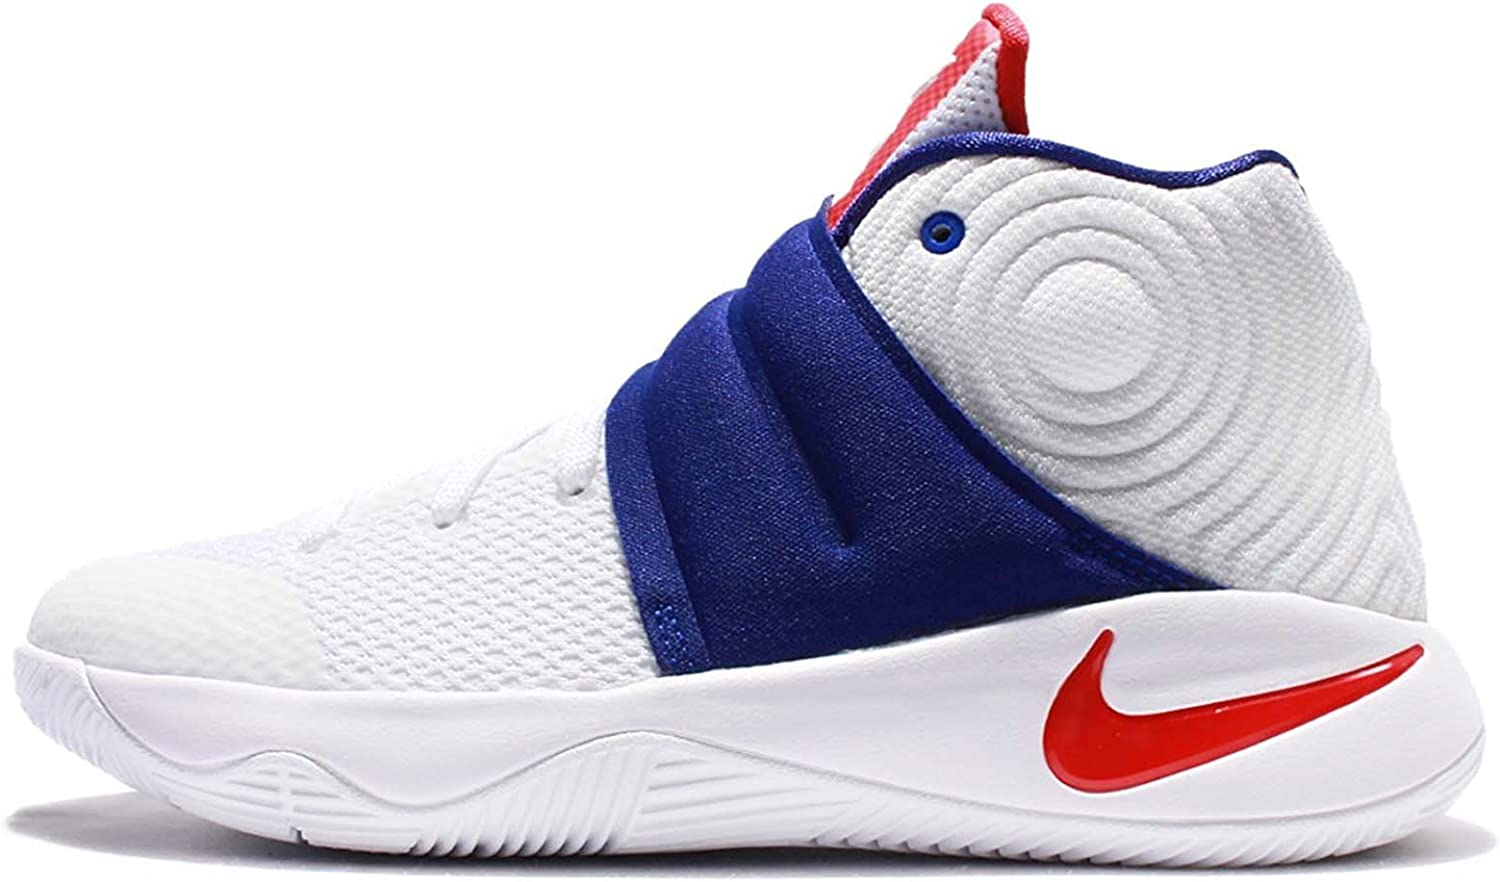 Nike Kyrie Max 83% OFF 2 GS Ranking TOP19 Youth Basketball Shoes 4Y RED M BLUE WHITE US